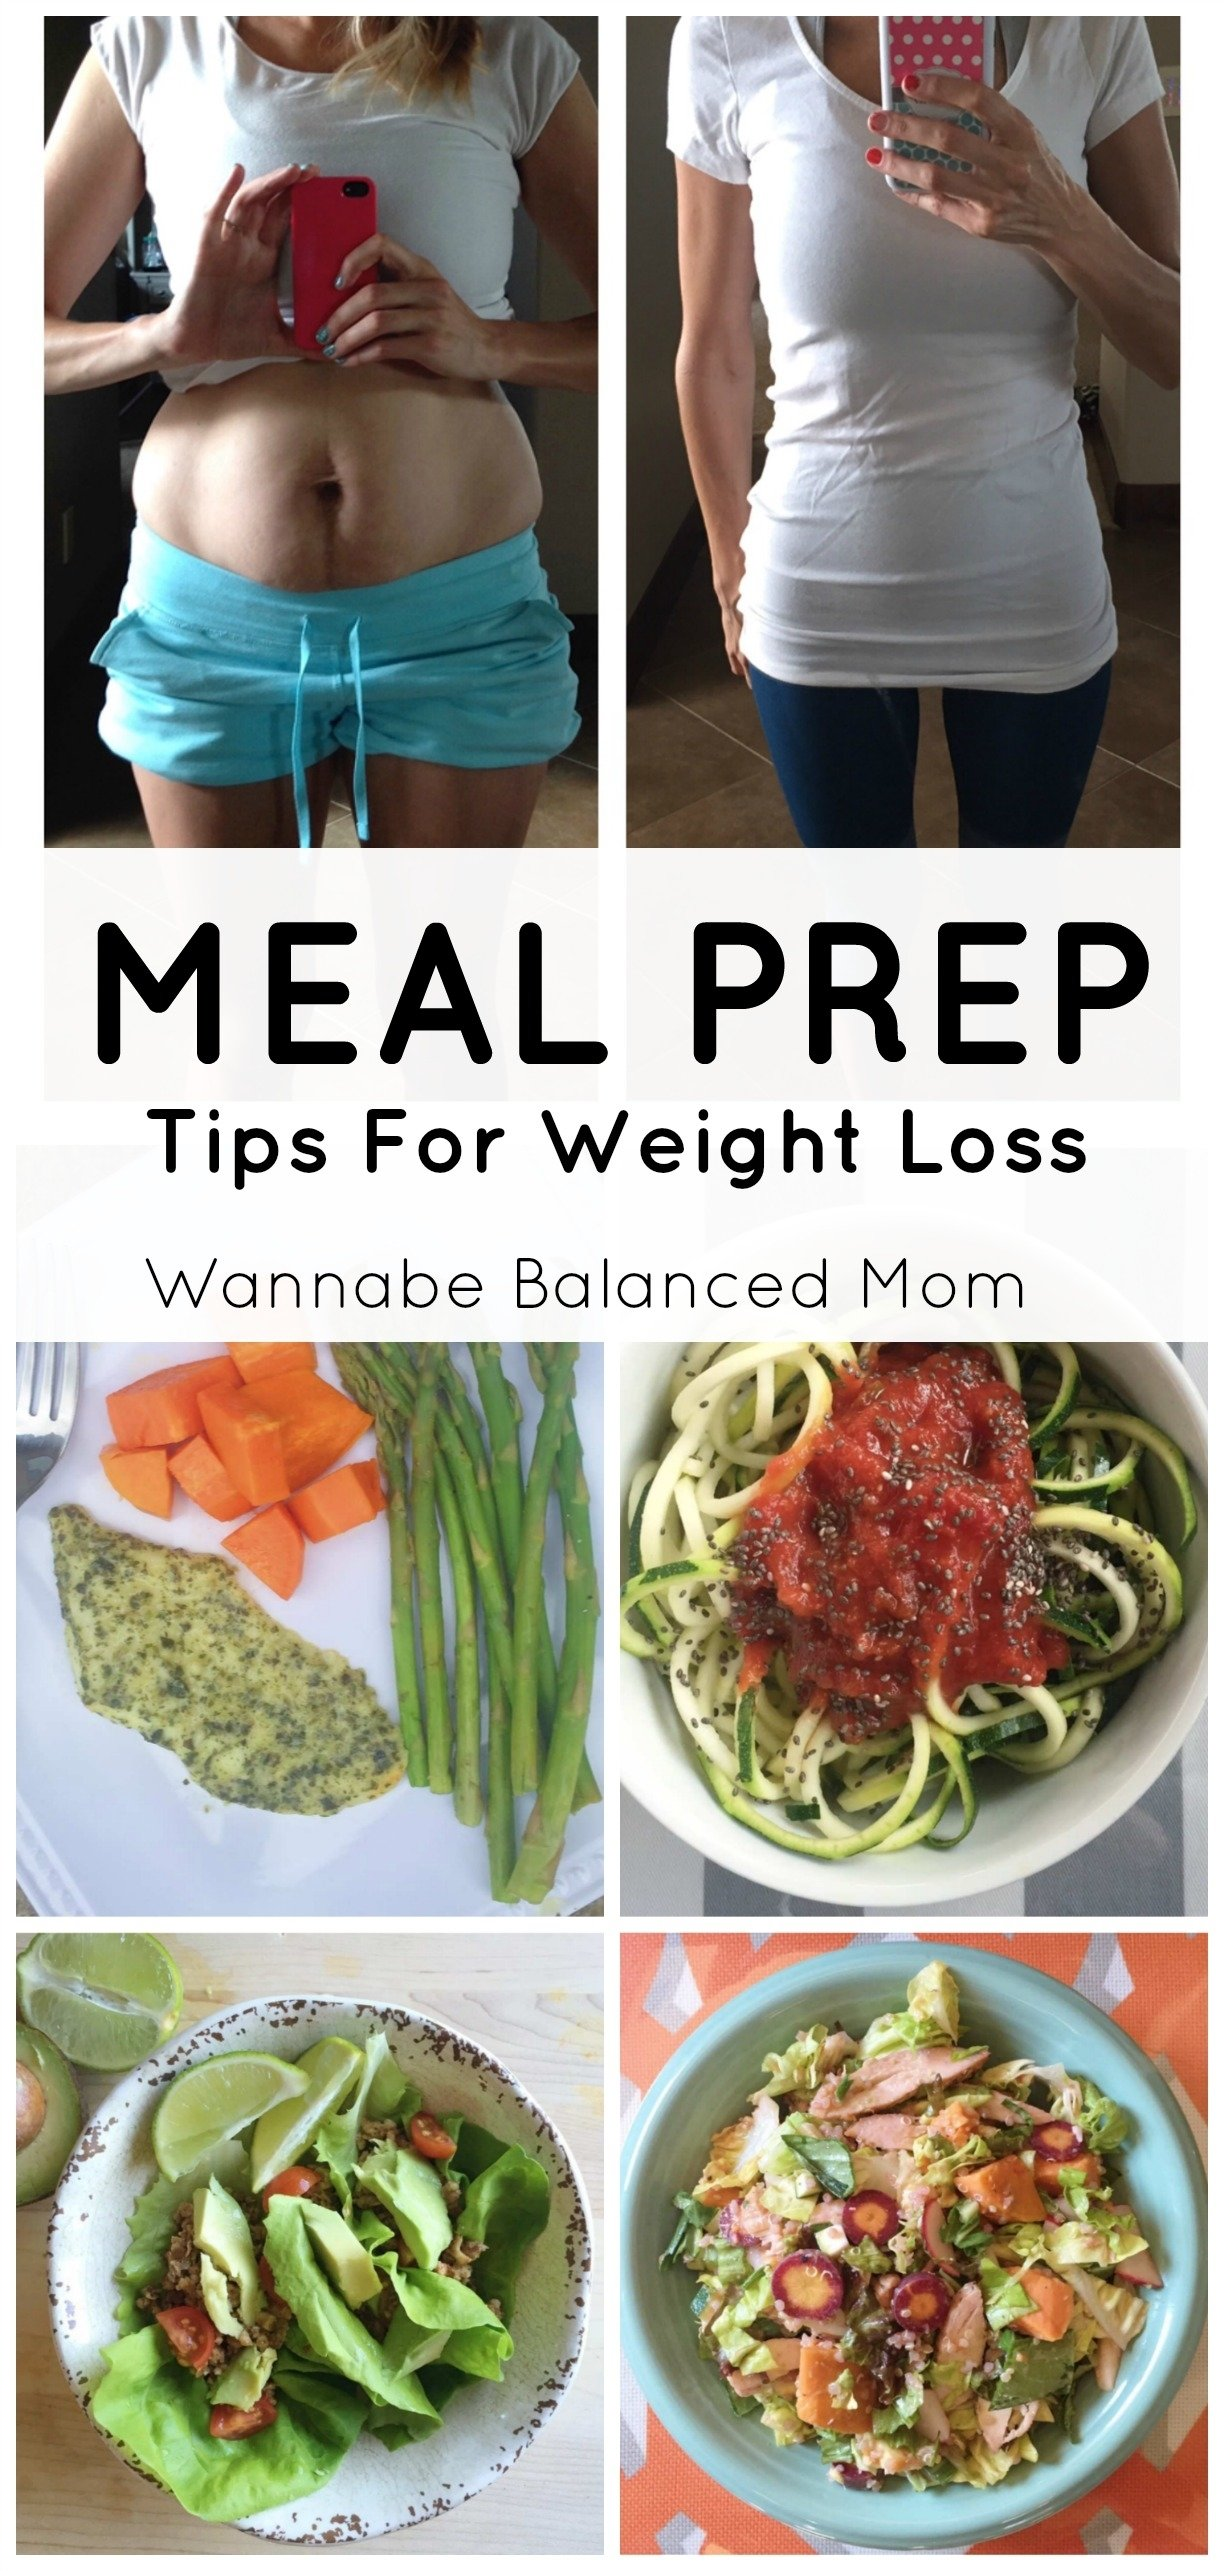 how to meal prep for weight loss | 7 meal ideas - wannabe balanced mom